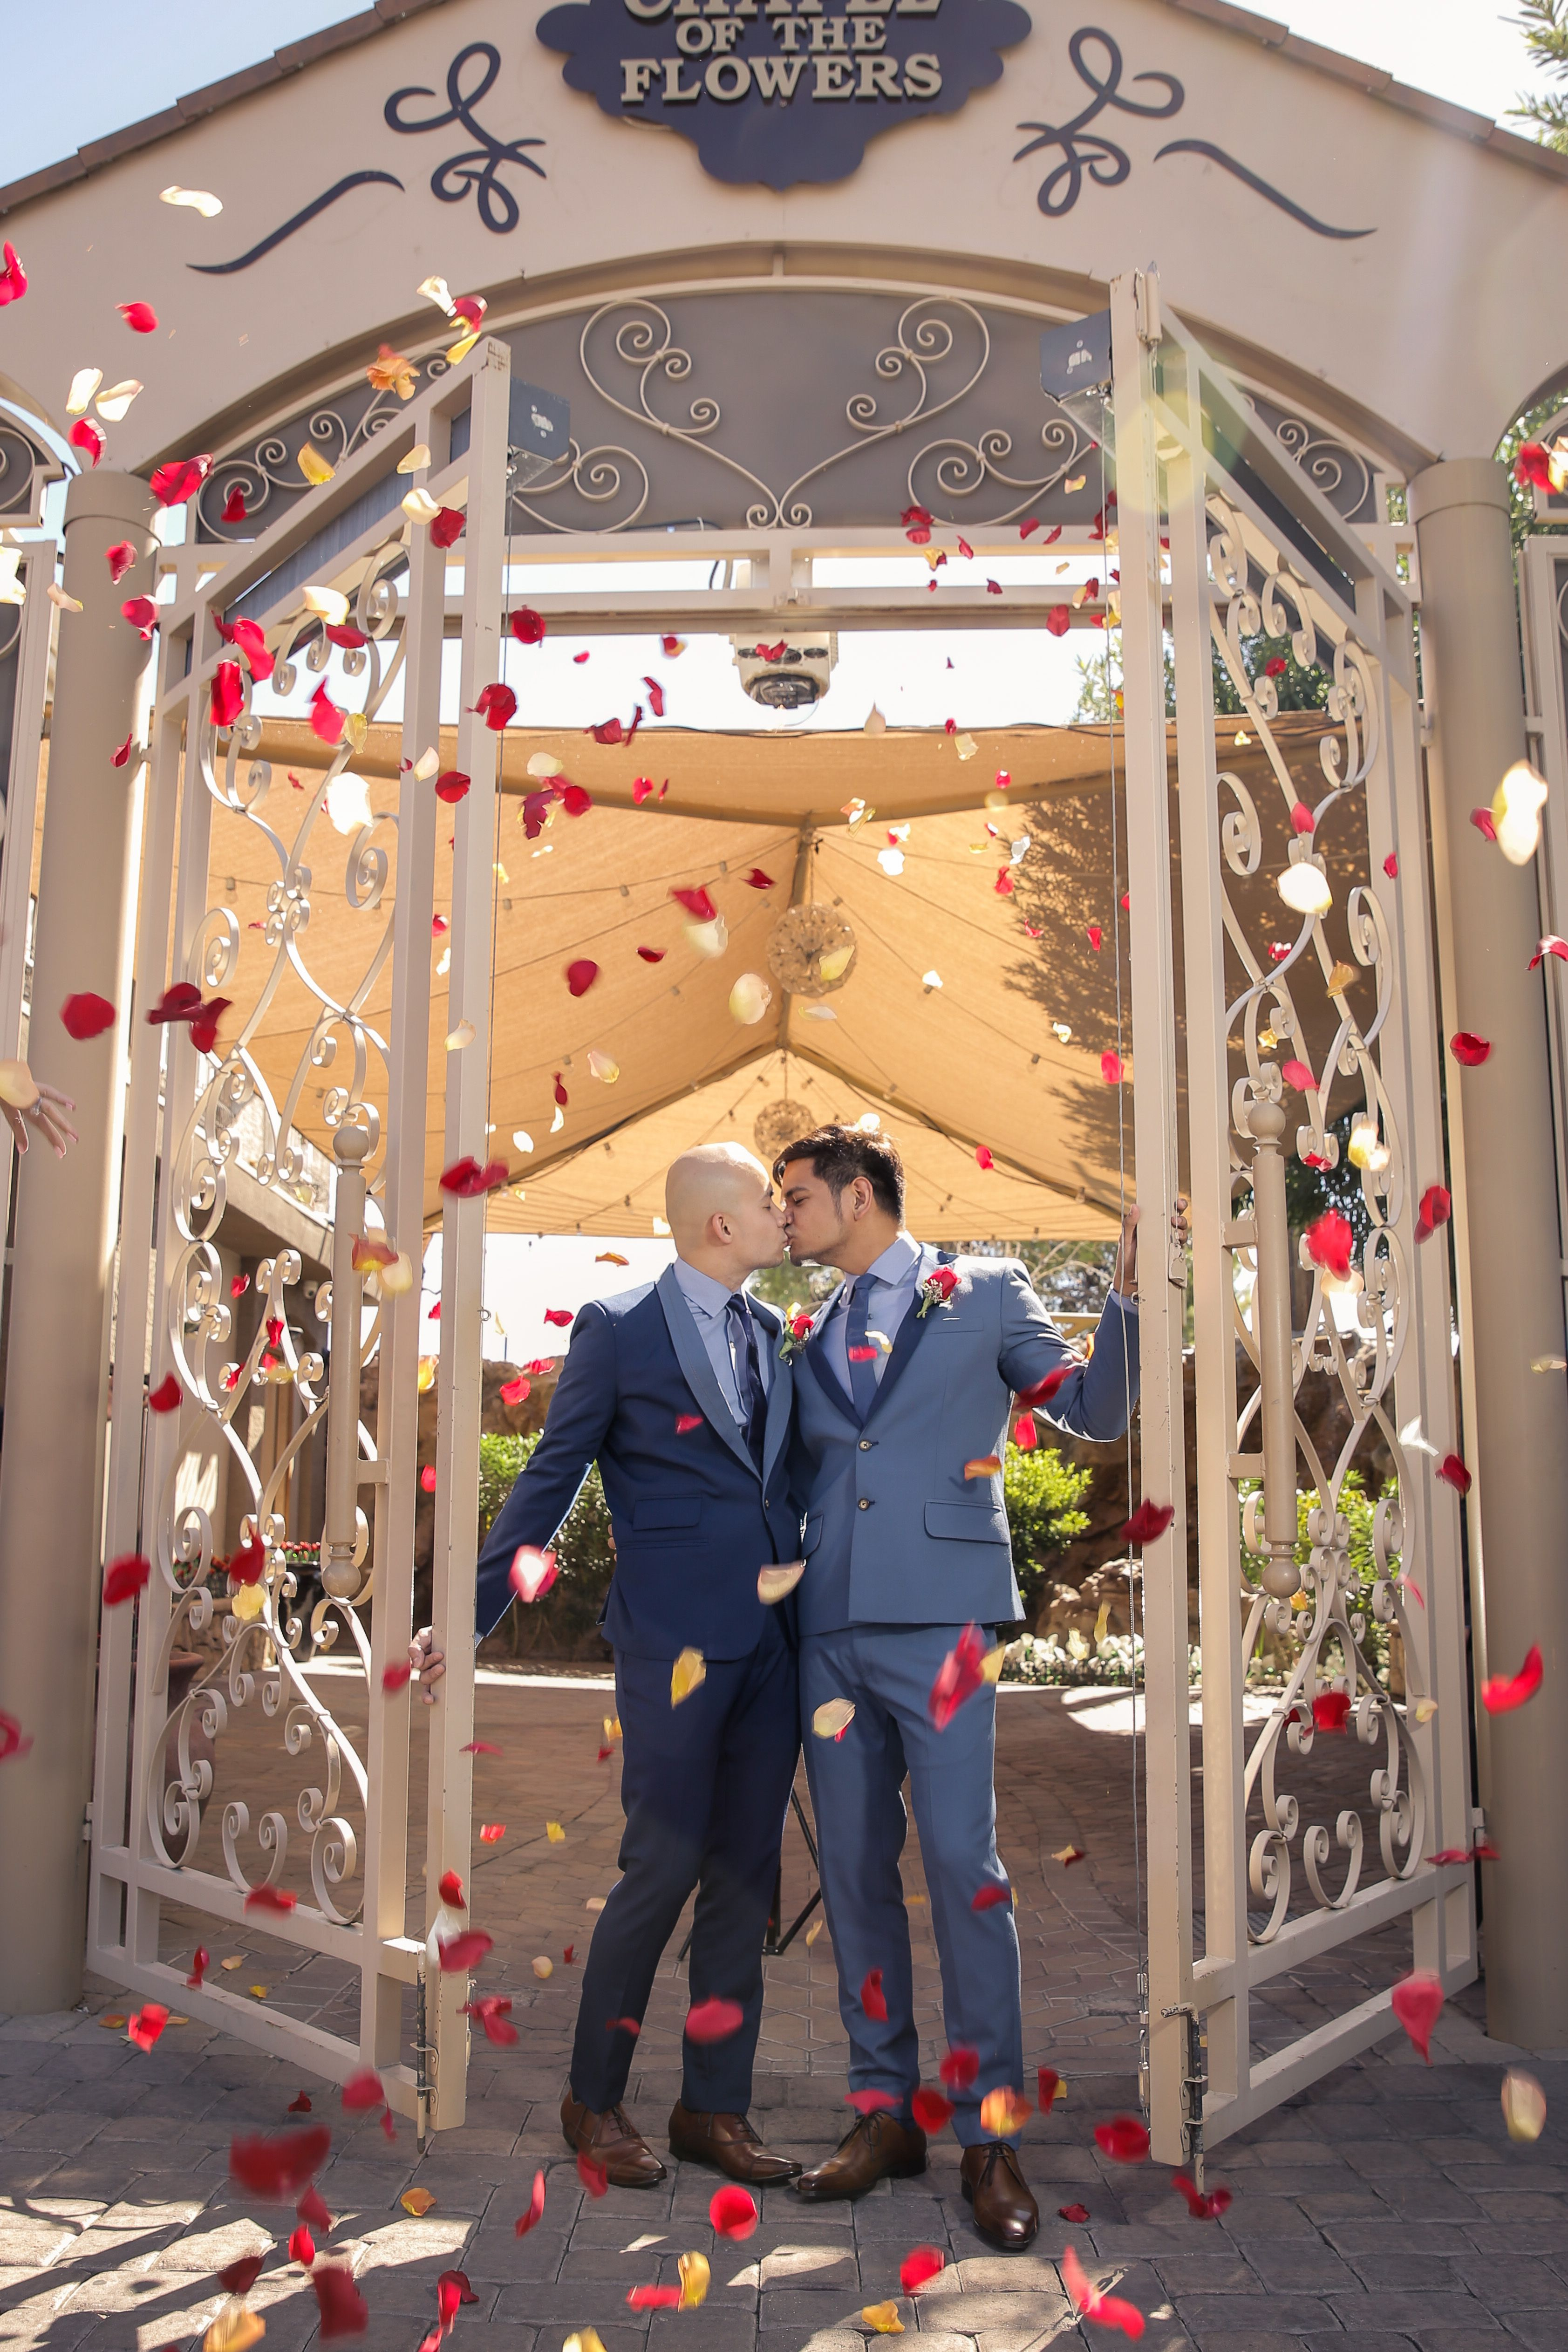 Las Vegas Wedding Packages All Inclusive.Victorias Family All Inclusive Las Vegas Wedding Ceremony